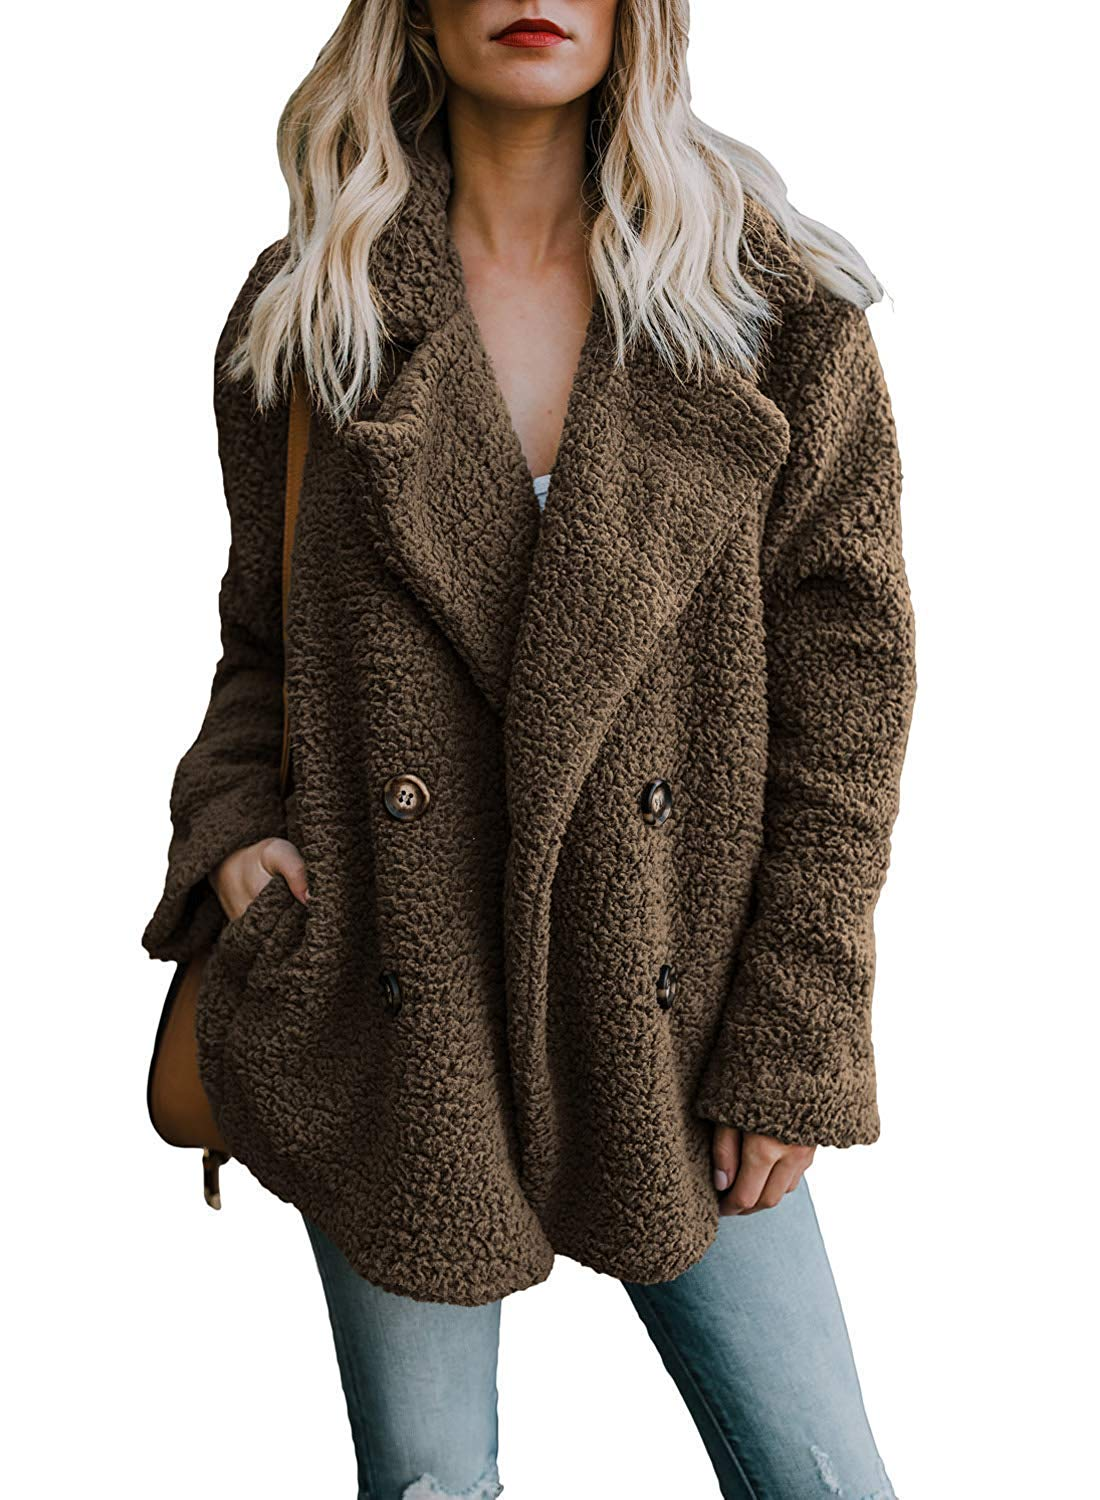 bebc910387a Get Quotations · OLIVE TREE Womens Fleece Open Front Cardigan Coat Jacket  with Pockets Outerwear